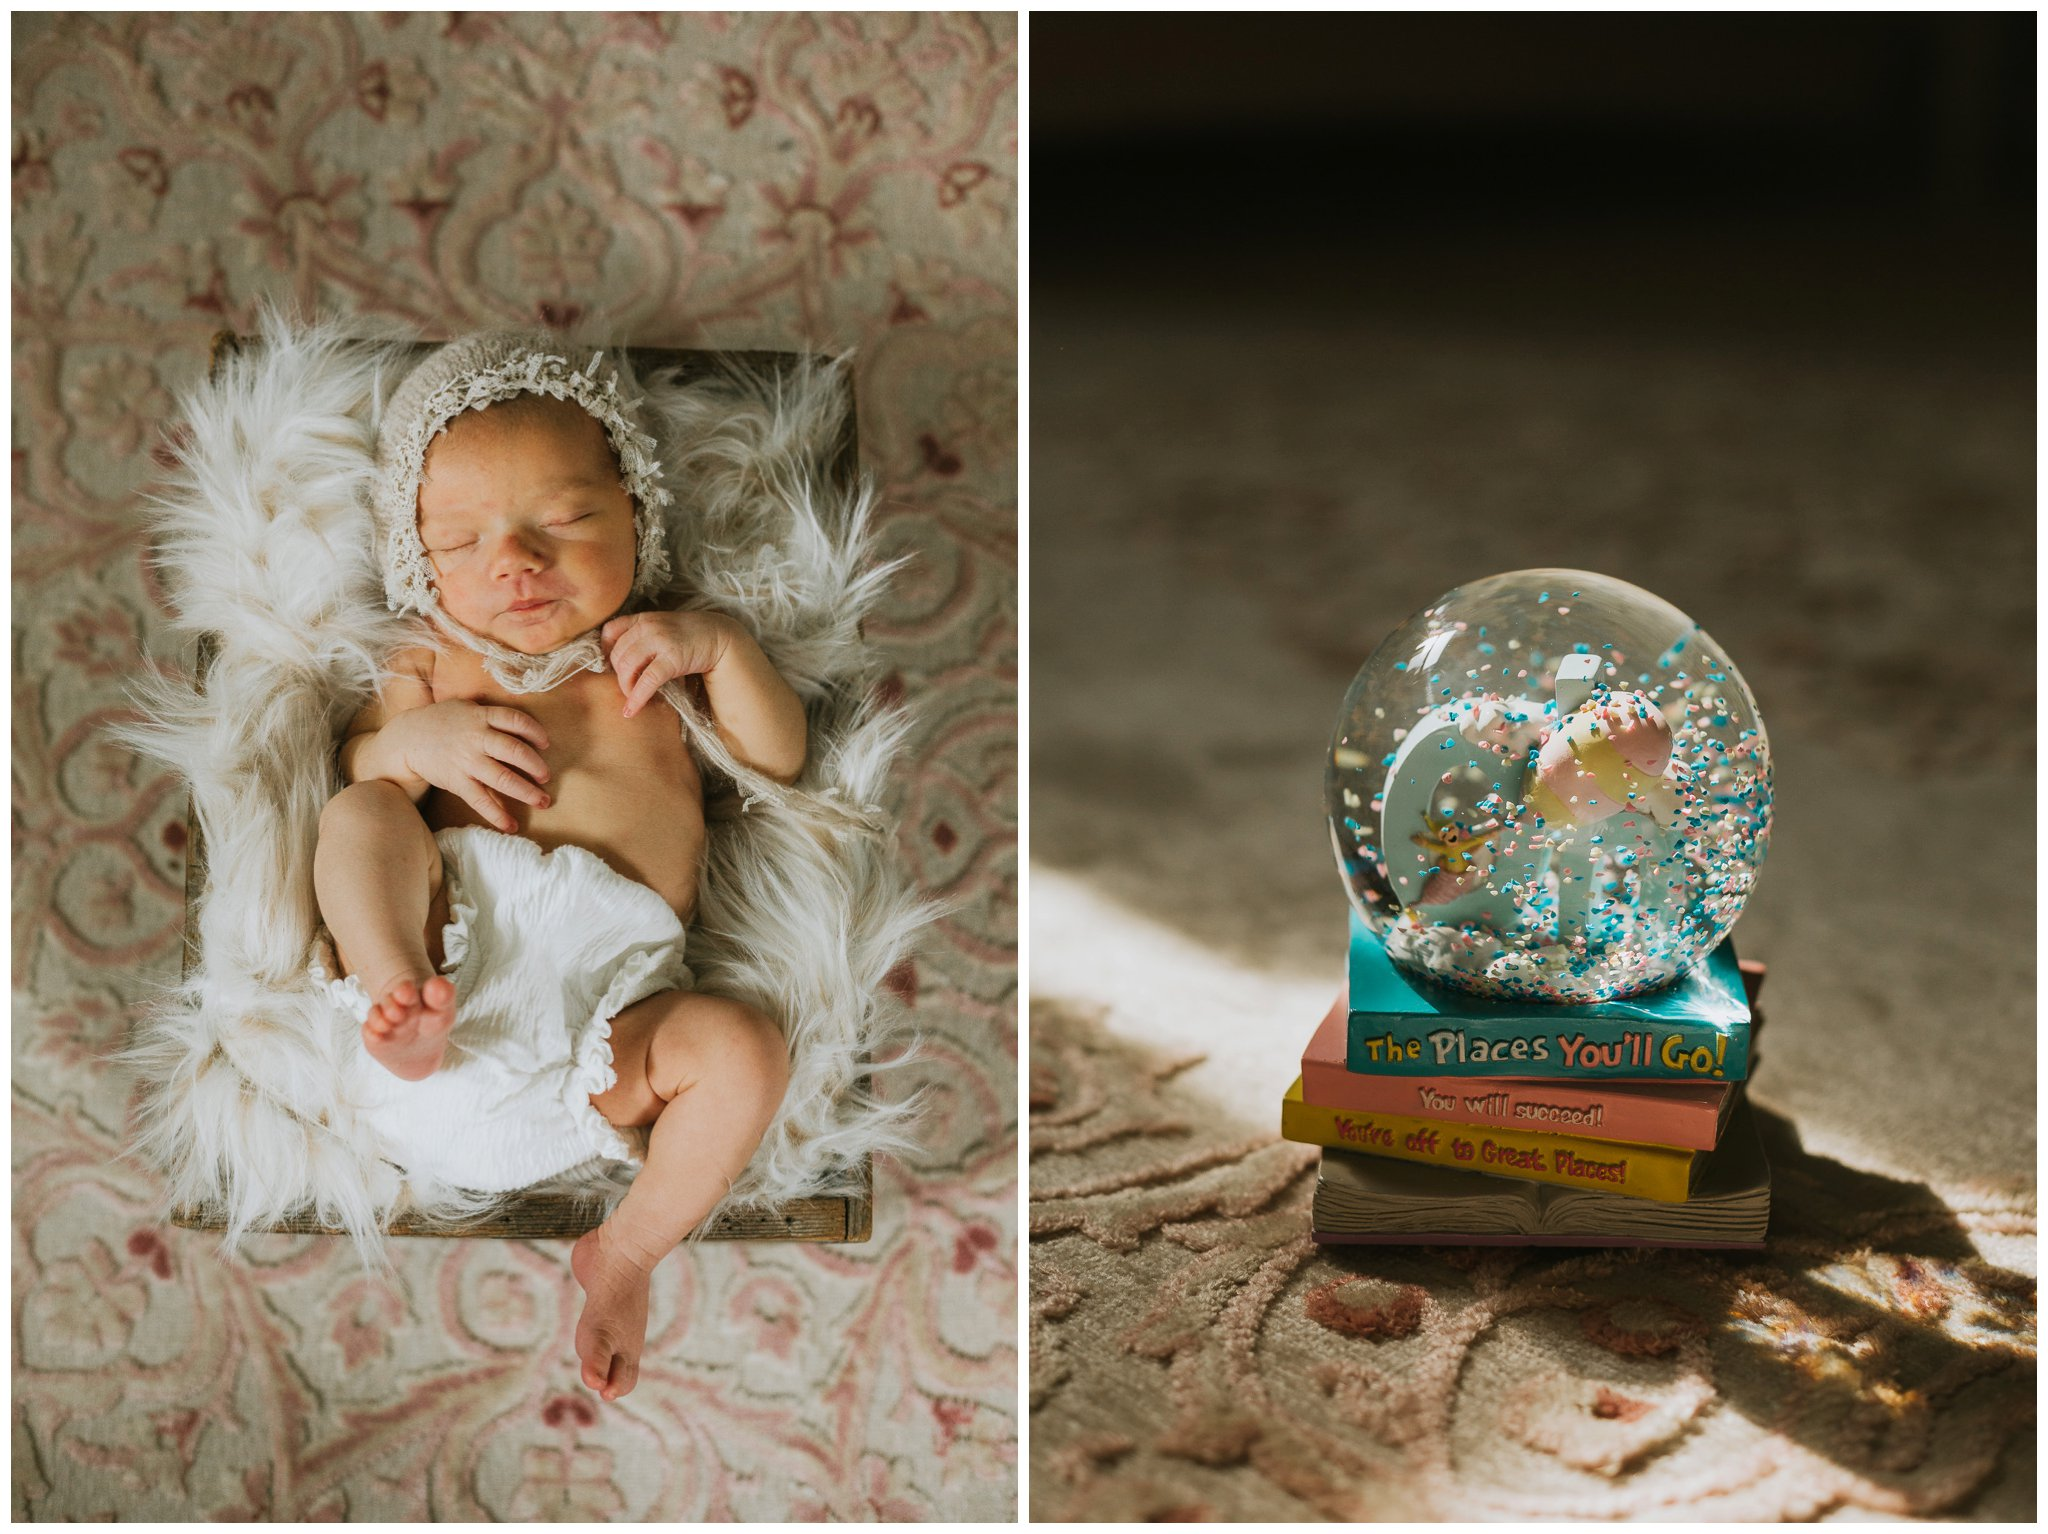 Kimberly Smith Photography| Home Photography| Home Sessions| Jupiter Florida Photographer| Newborn Photos| Jupiter Newborn Photographer_0001.jpg